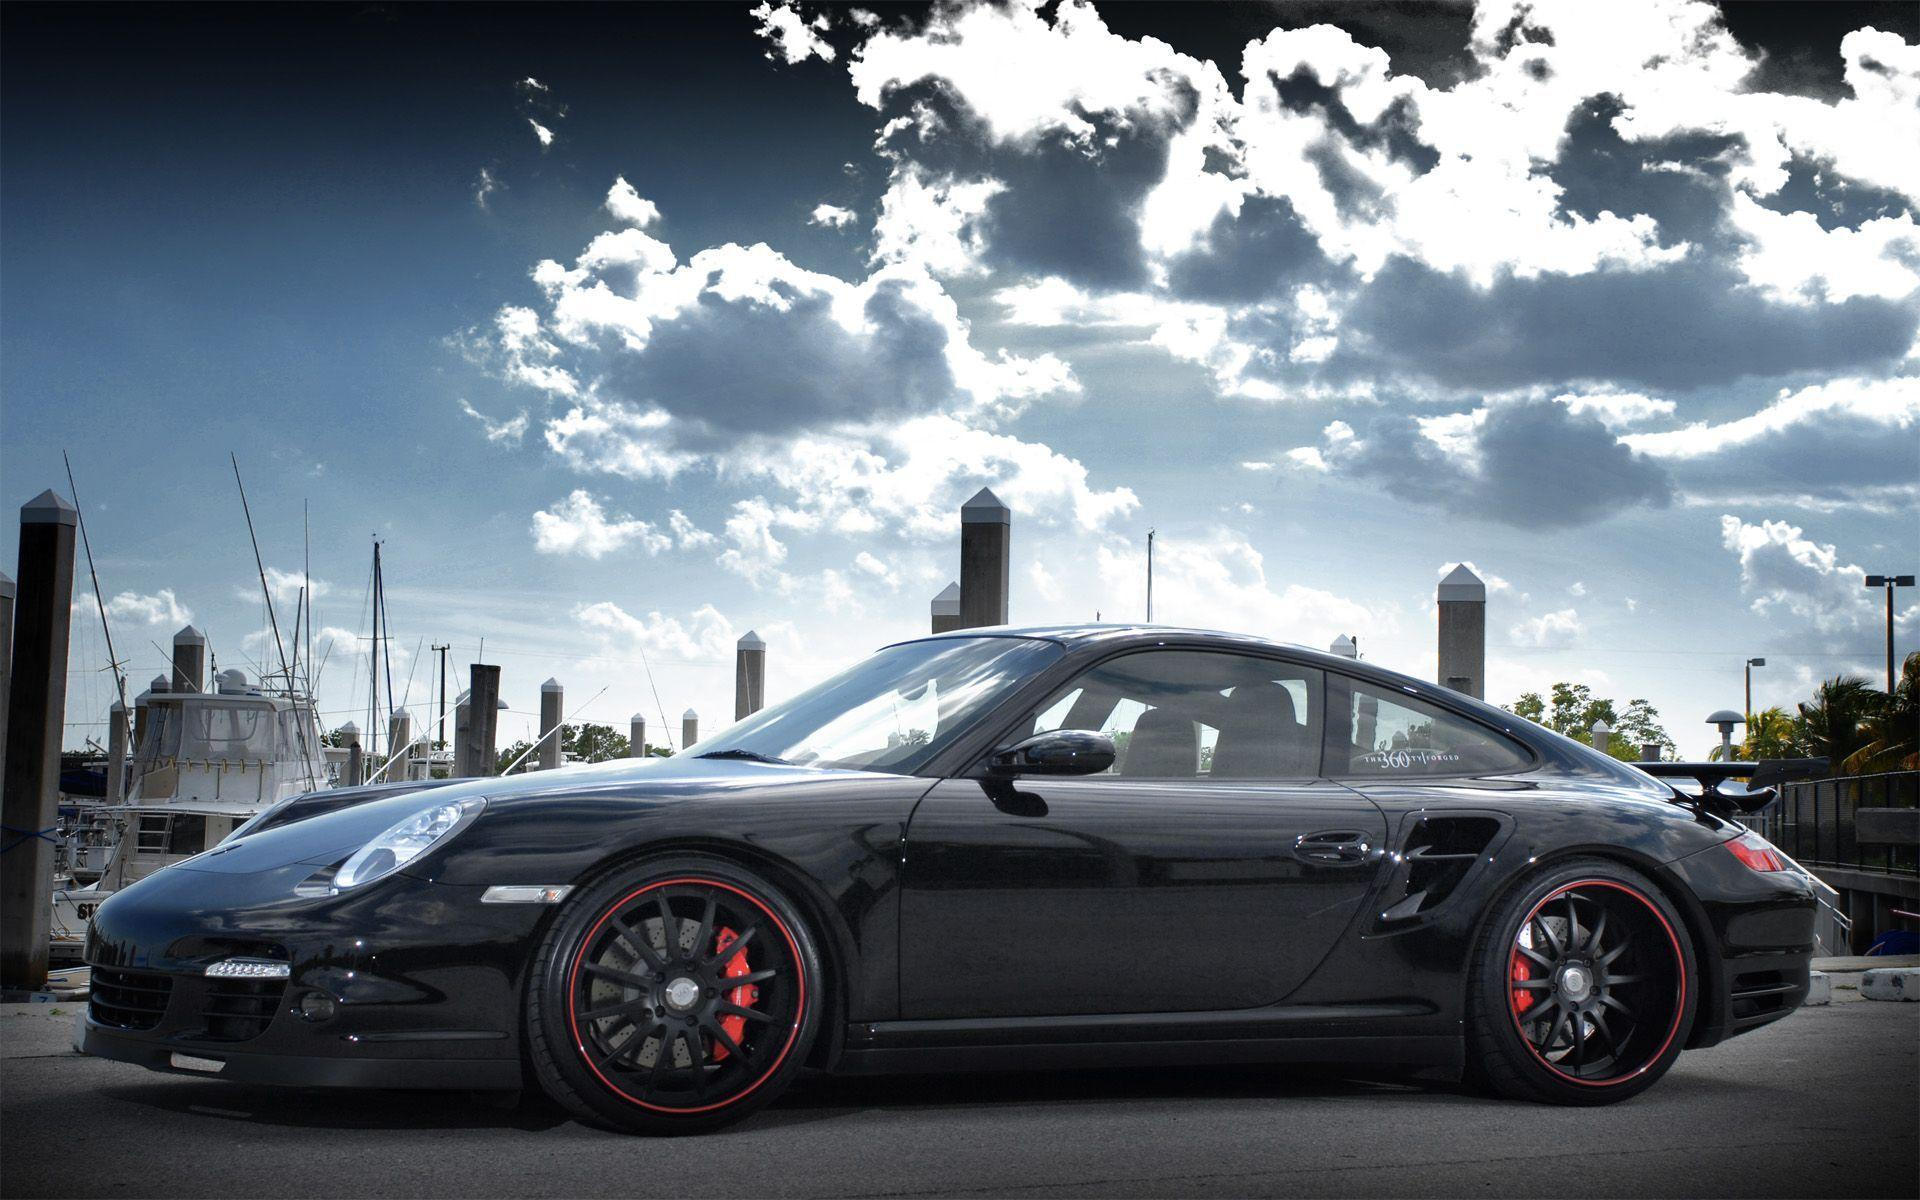 Porsche Wallpaper 14378 1920x1200 px ~ FreeWallSource.